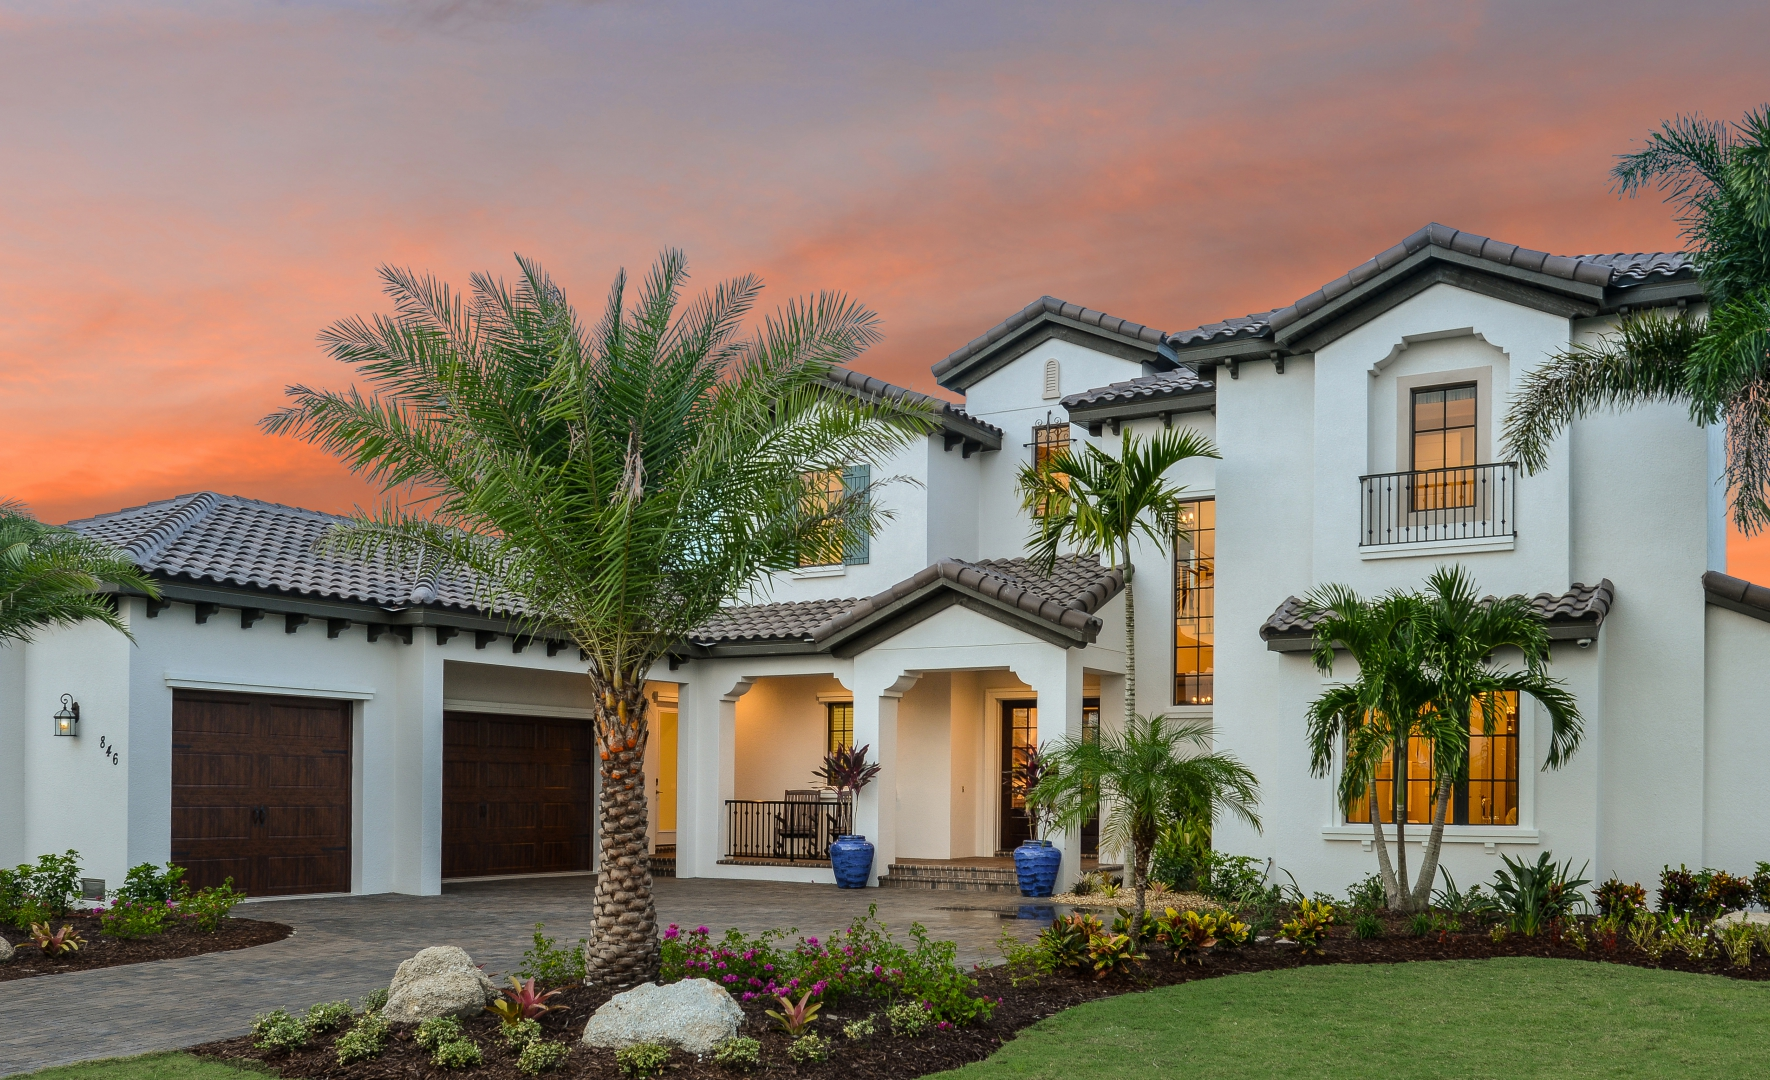 Mirabay Apollo Beach Florida Real Estate | Apollo Beach Realtor | New Homes Communities